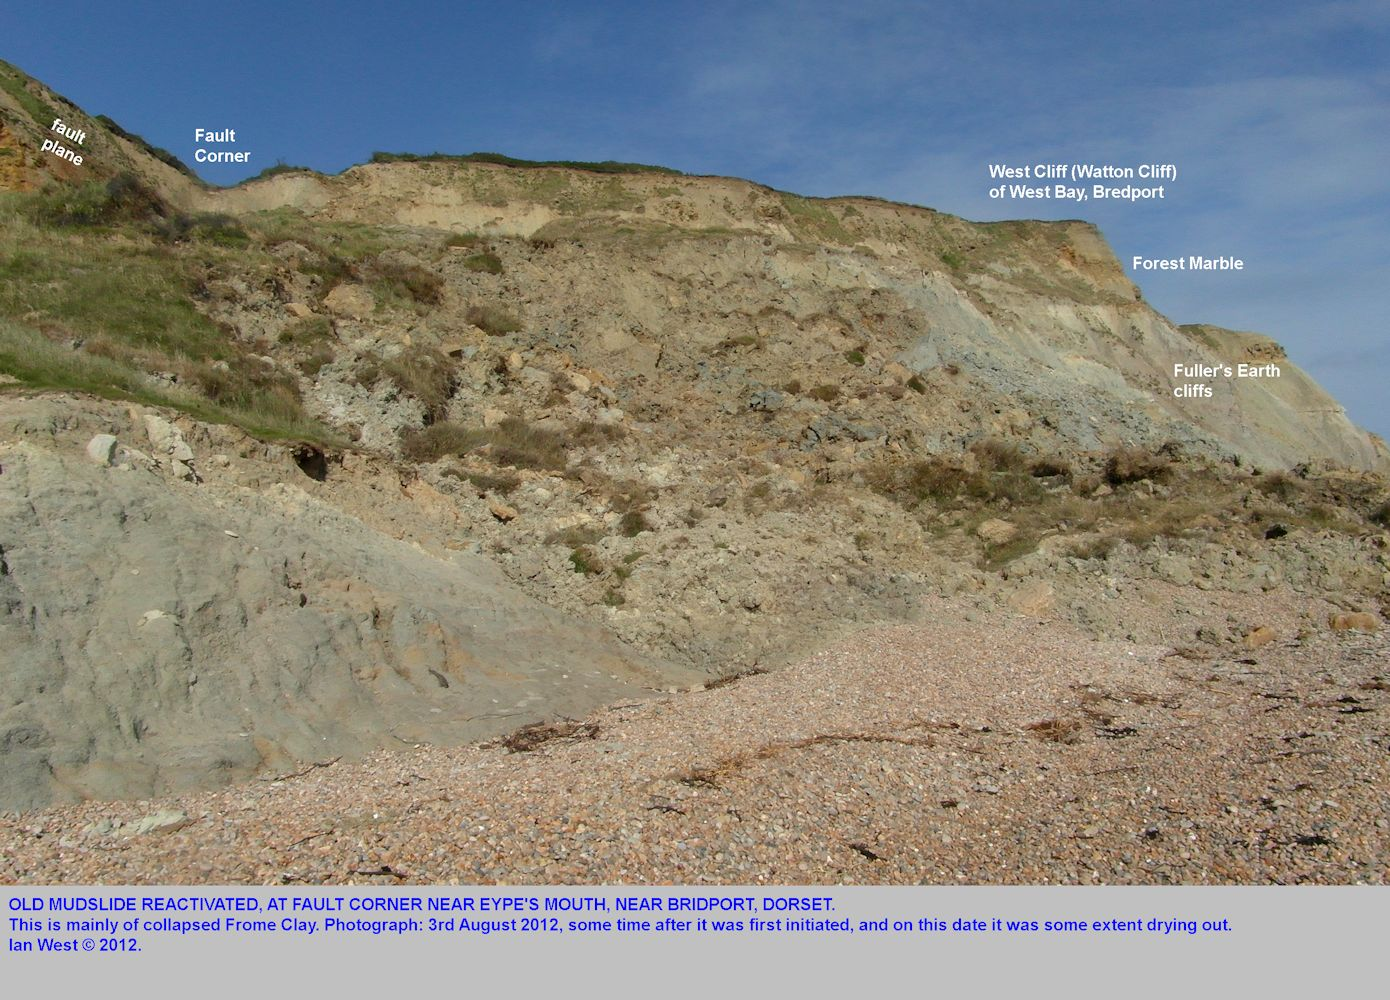 The 2012 mudslide at Fault Corner near Eype's Mouth, near Bridport, Dorset, seen on the 3rd August 2012, from the west side